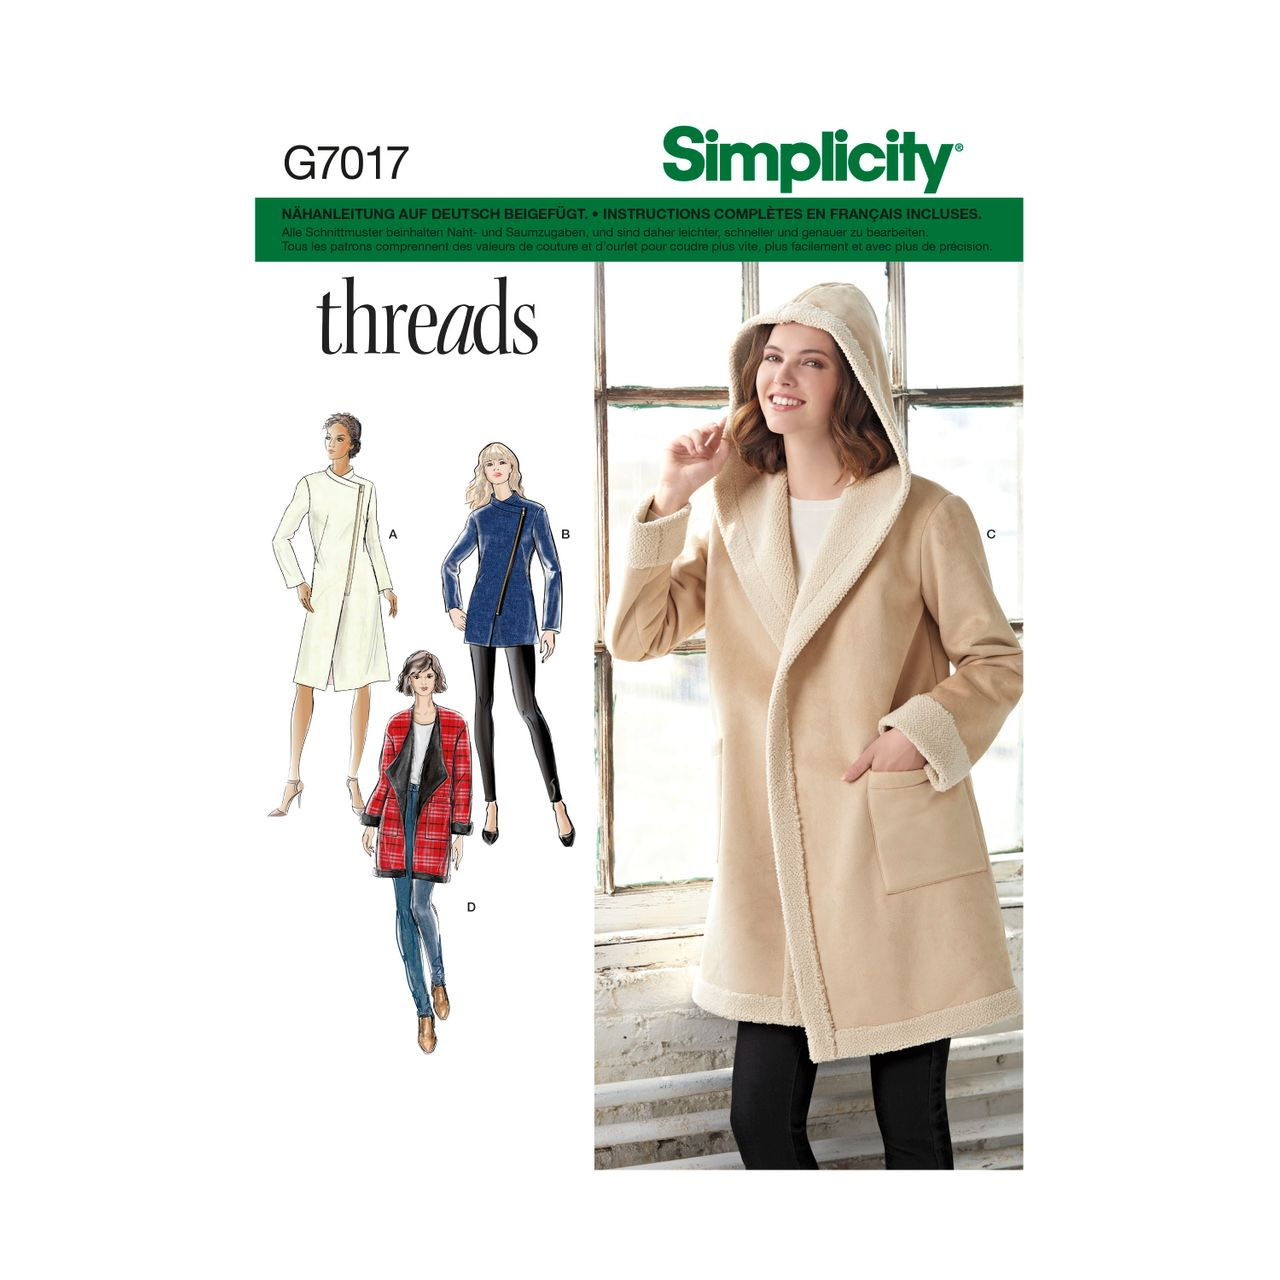 nYBUxxCW Simplicity 7017 Schnitte Mantel Jacke Schnittmuster FclJK1